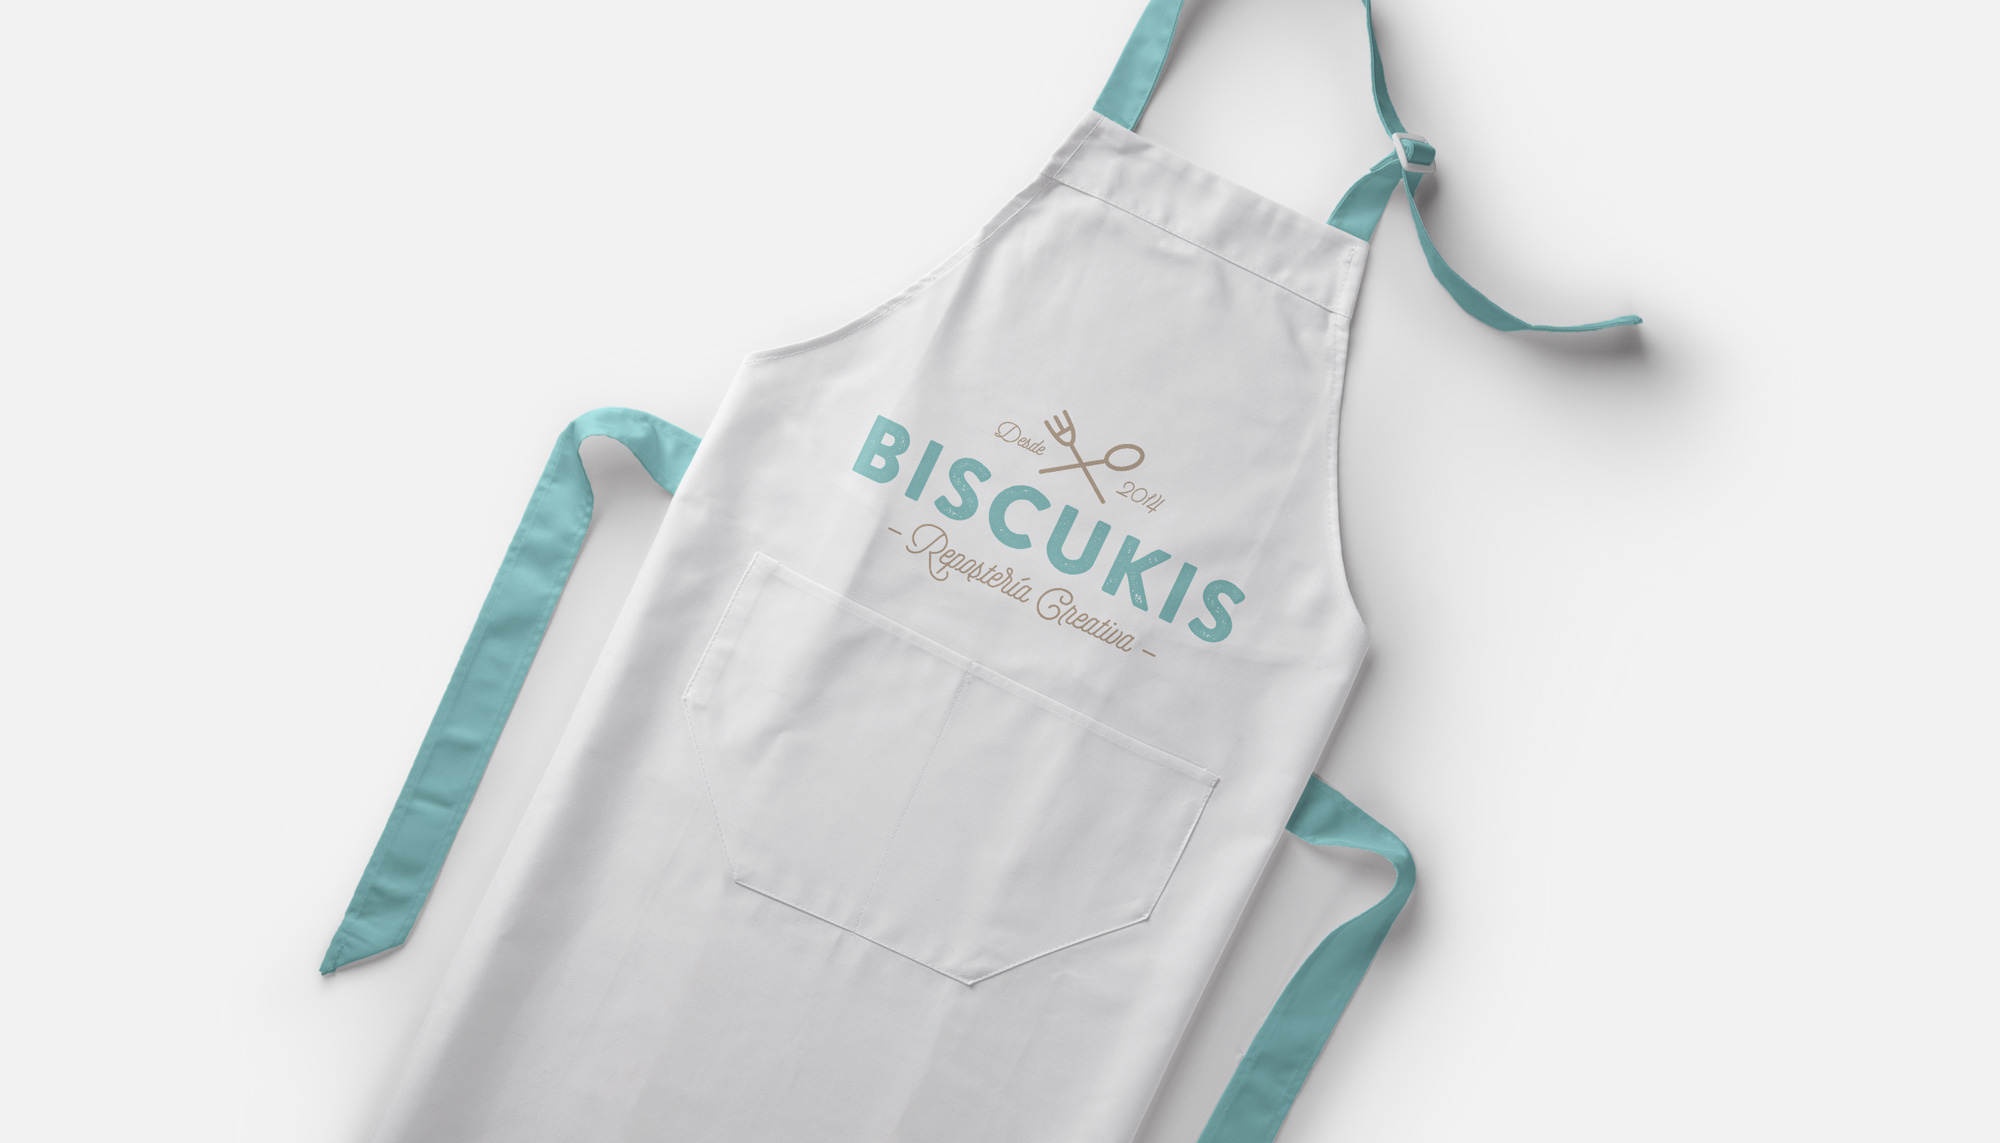 biscukis-03